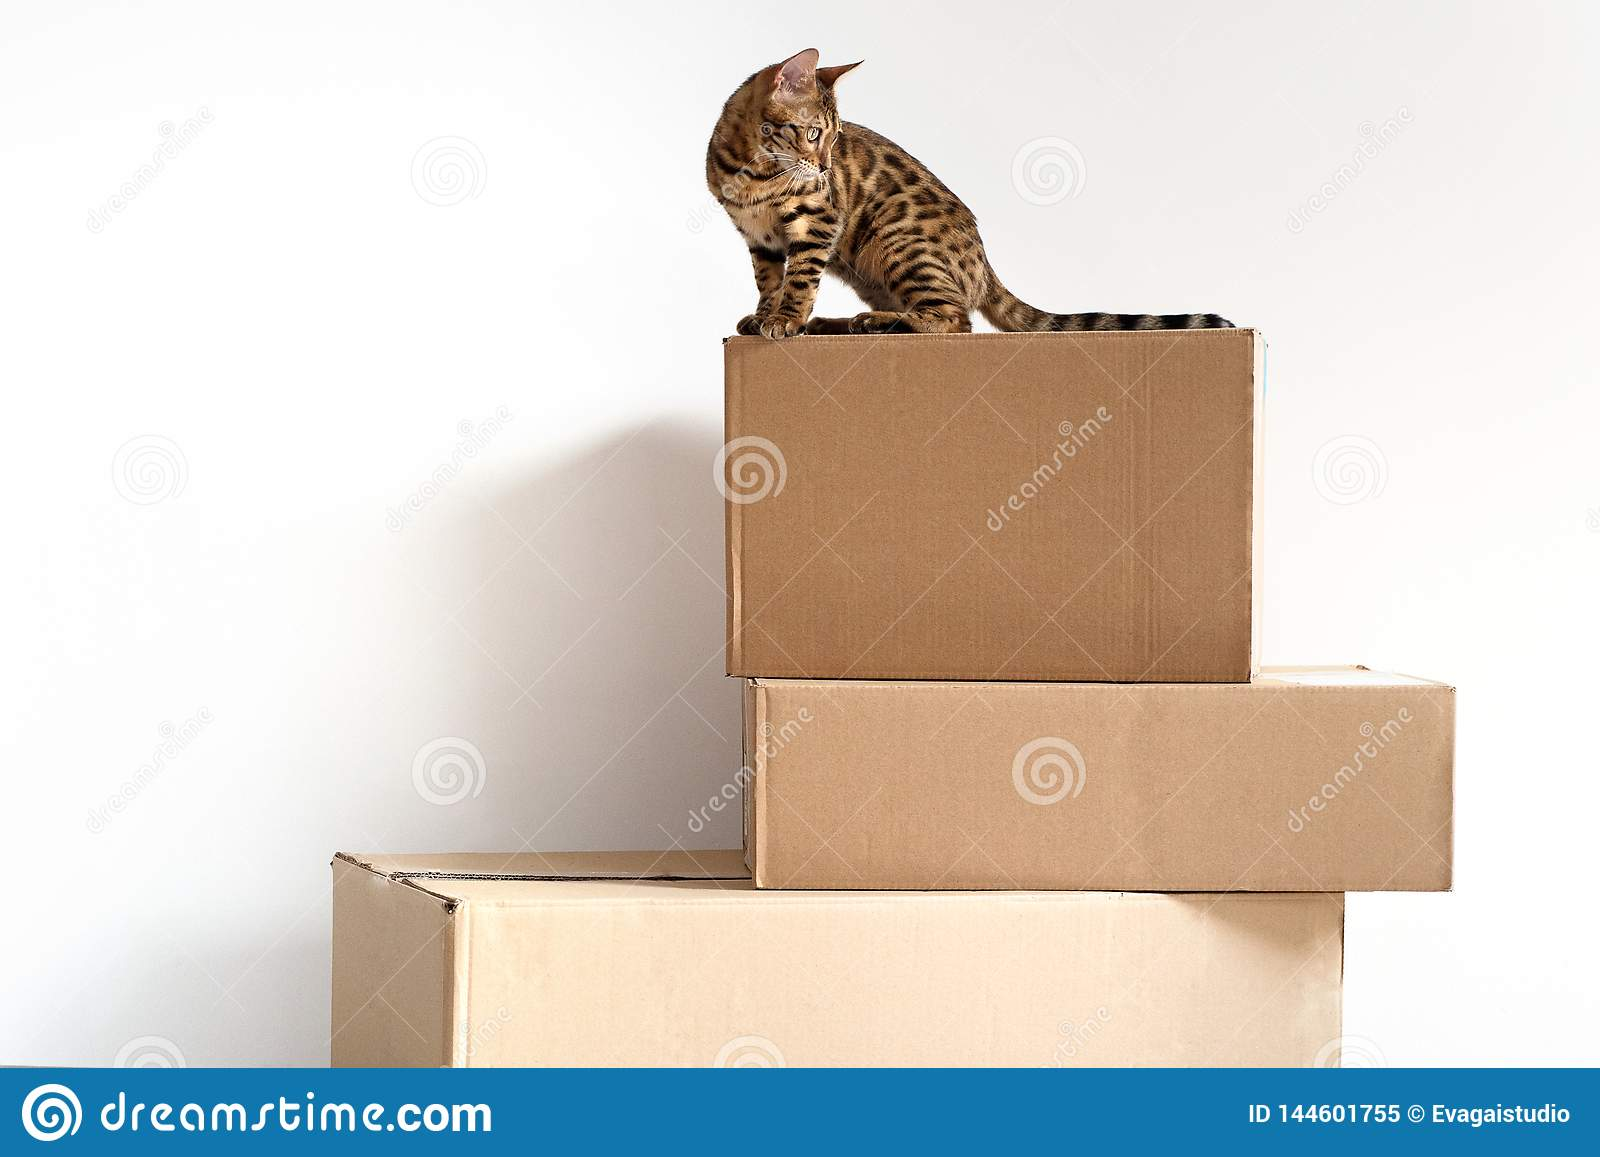 Bengal cat sits on three craft boxes stacked one on another isolated on white background